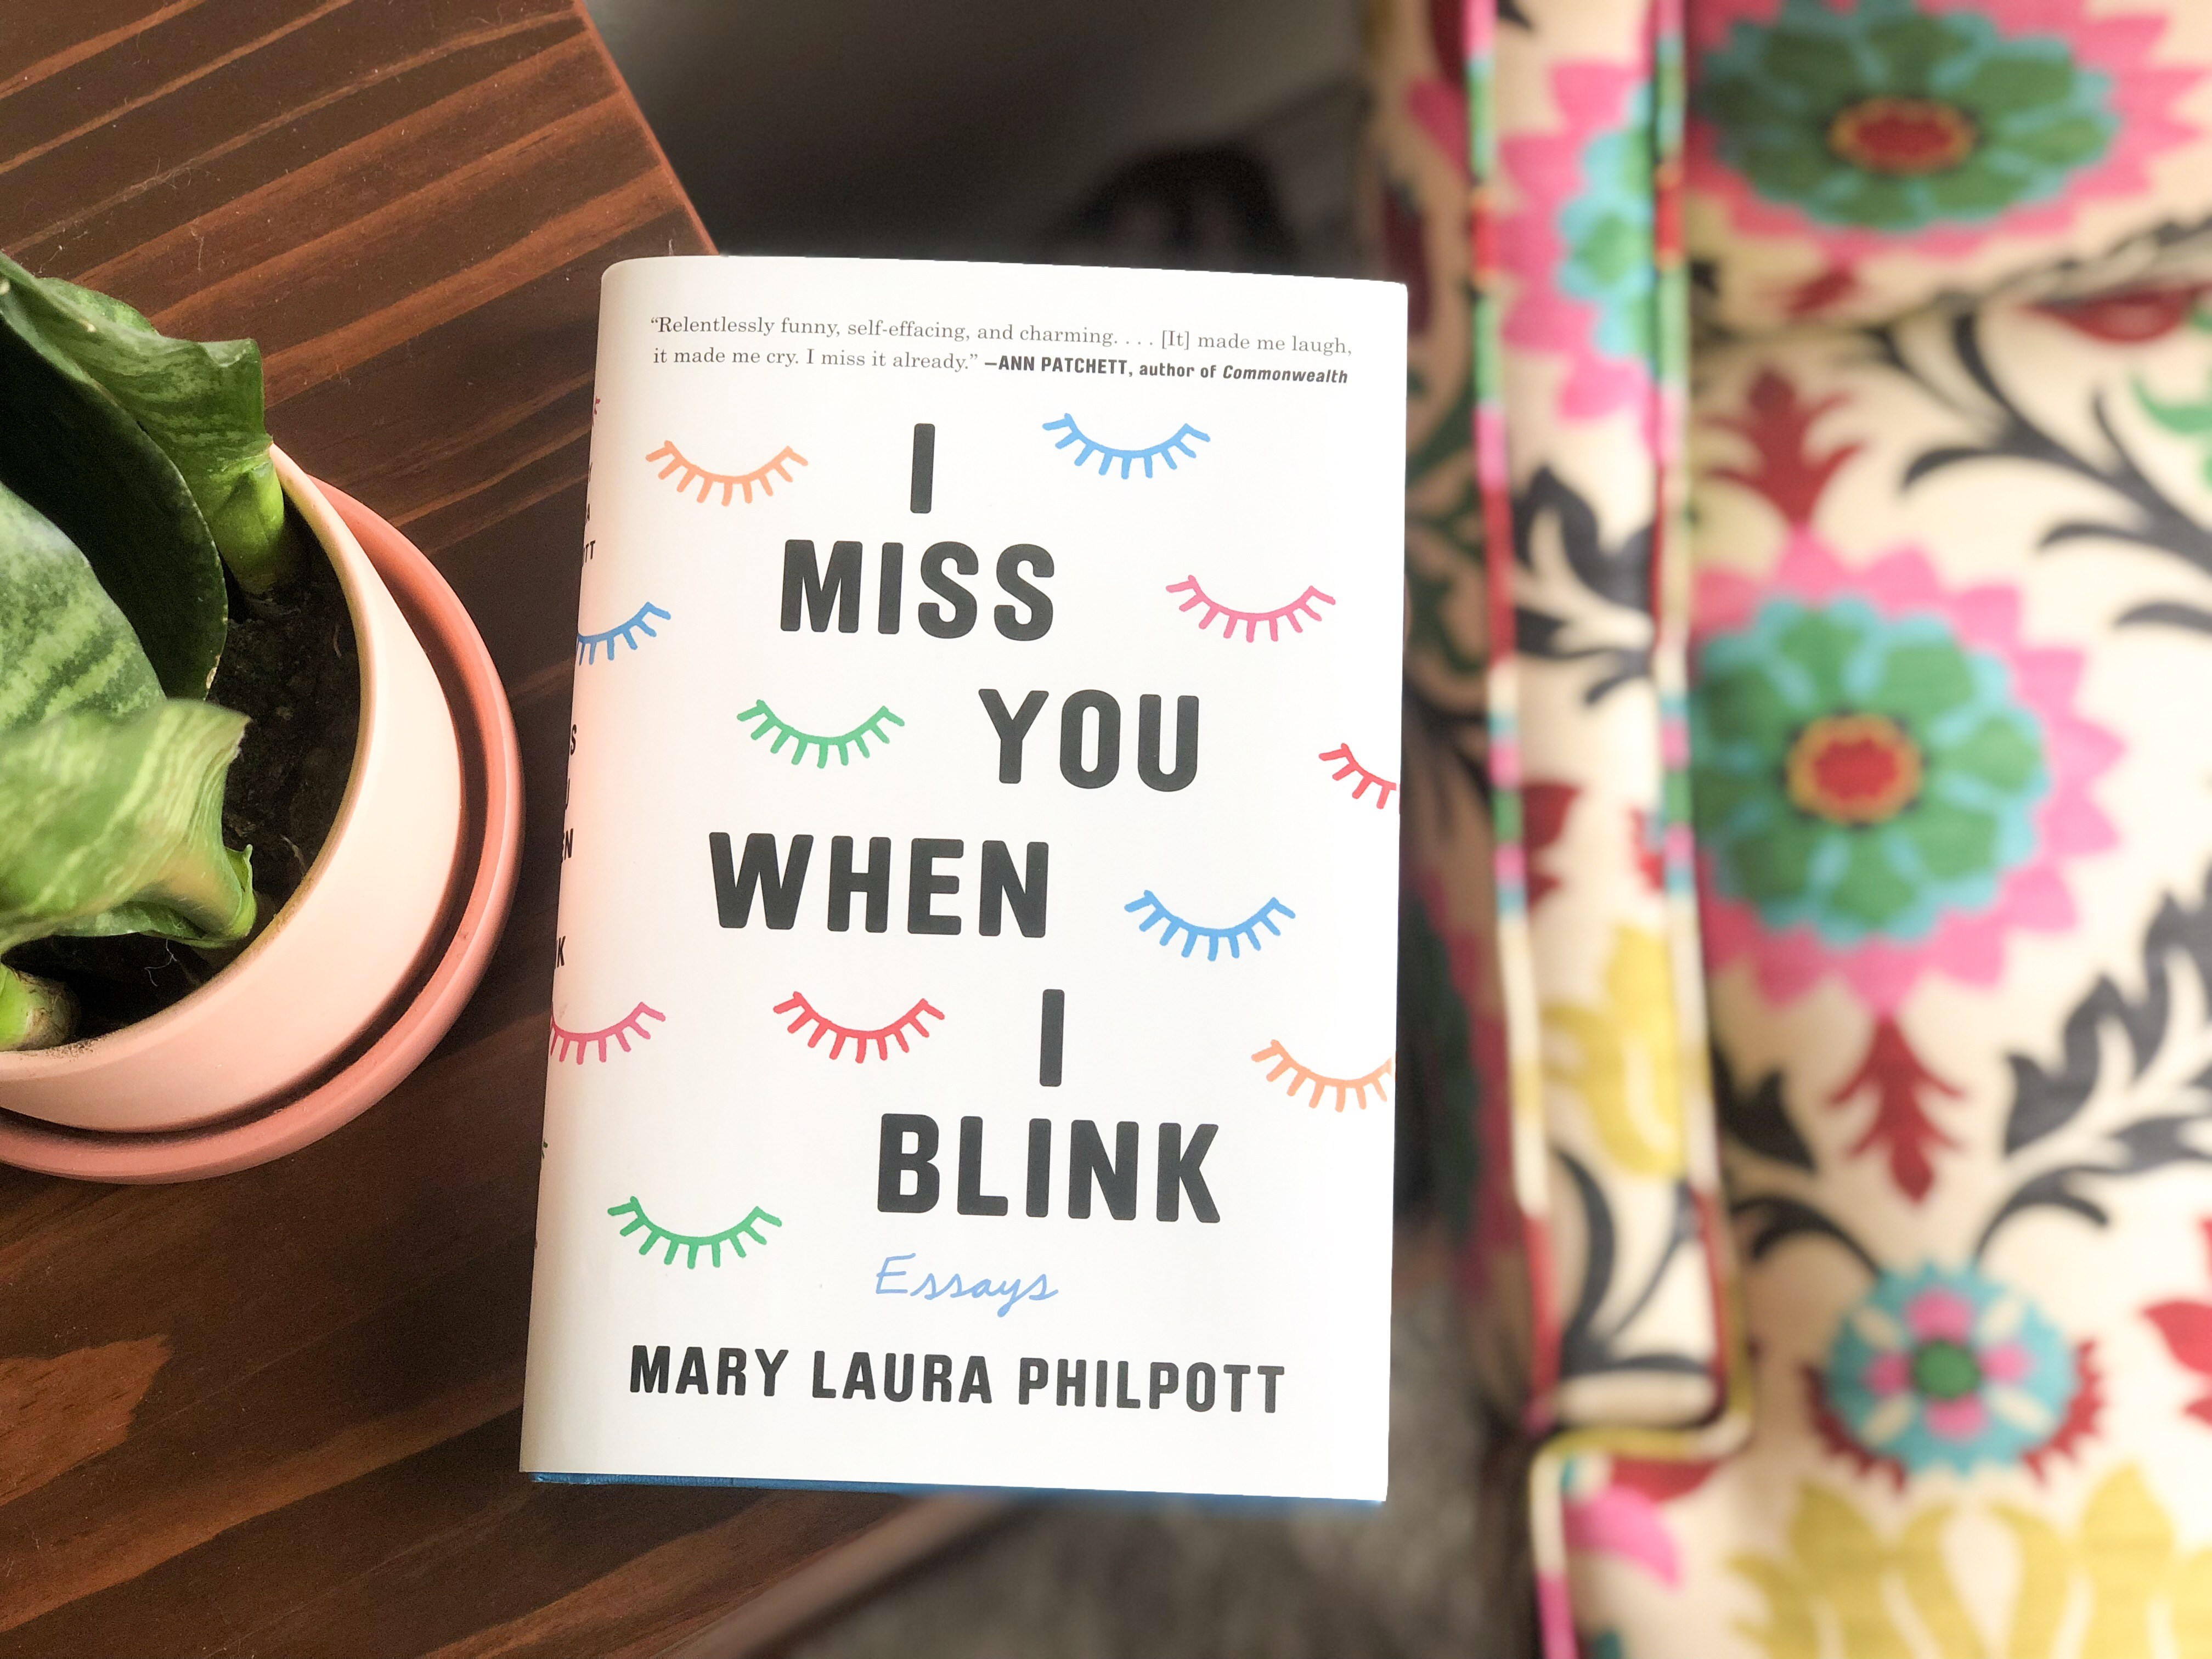 I Miss You When I Blink, Mary Laura Philpott